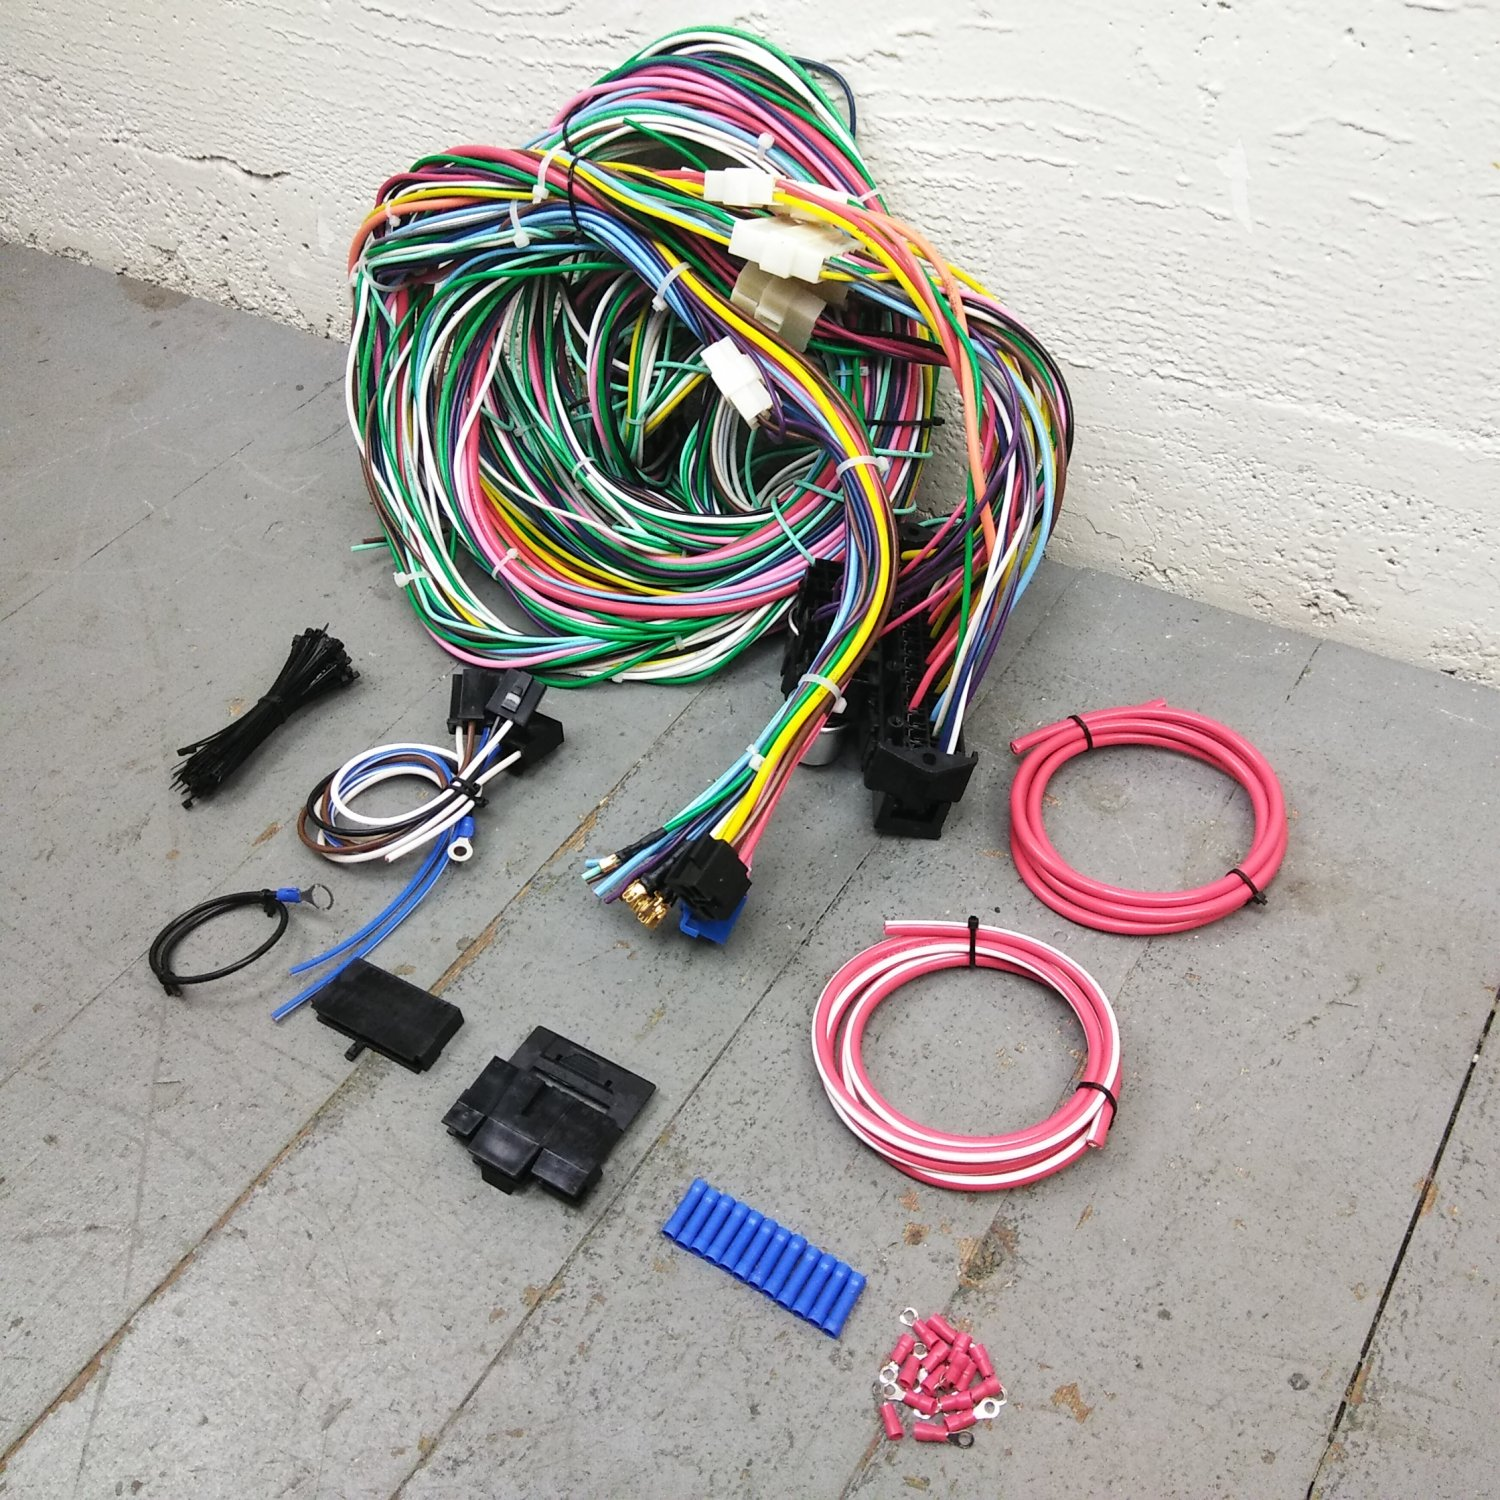 hight resolution of 1968 1972 nova wire harness upgrade kit fits painless circuit fuse update new bar product description c